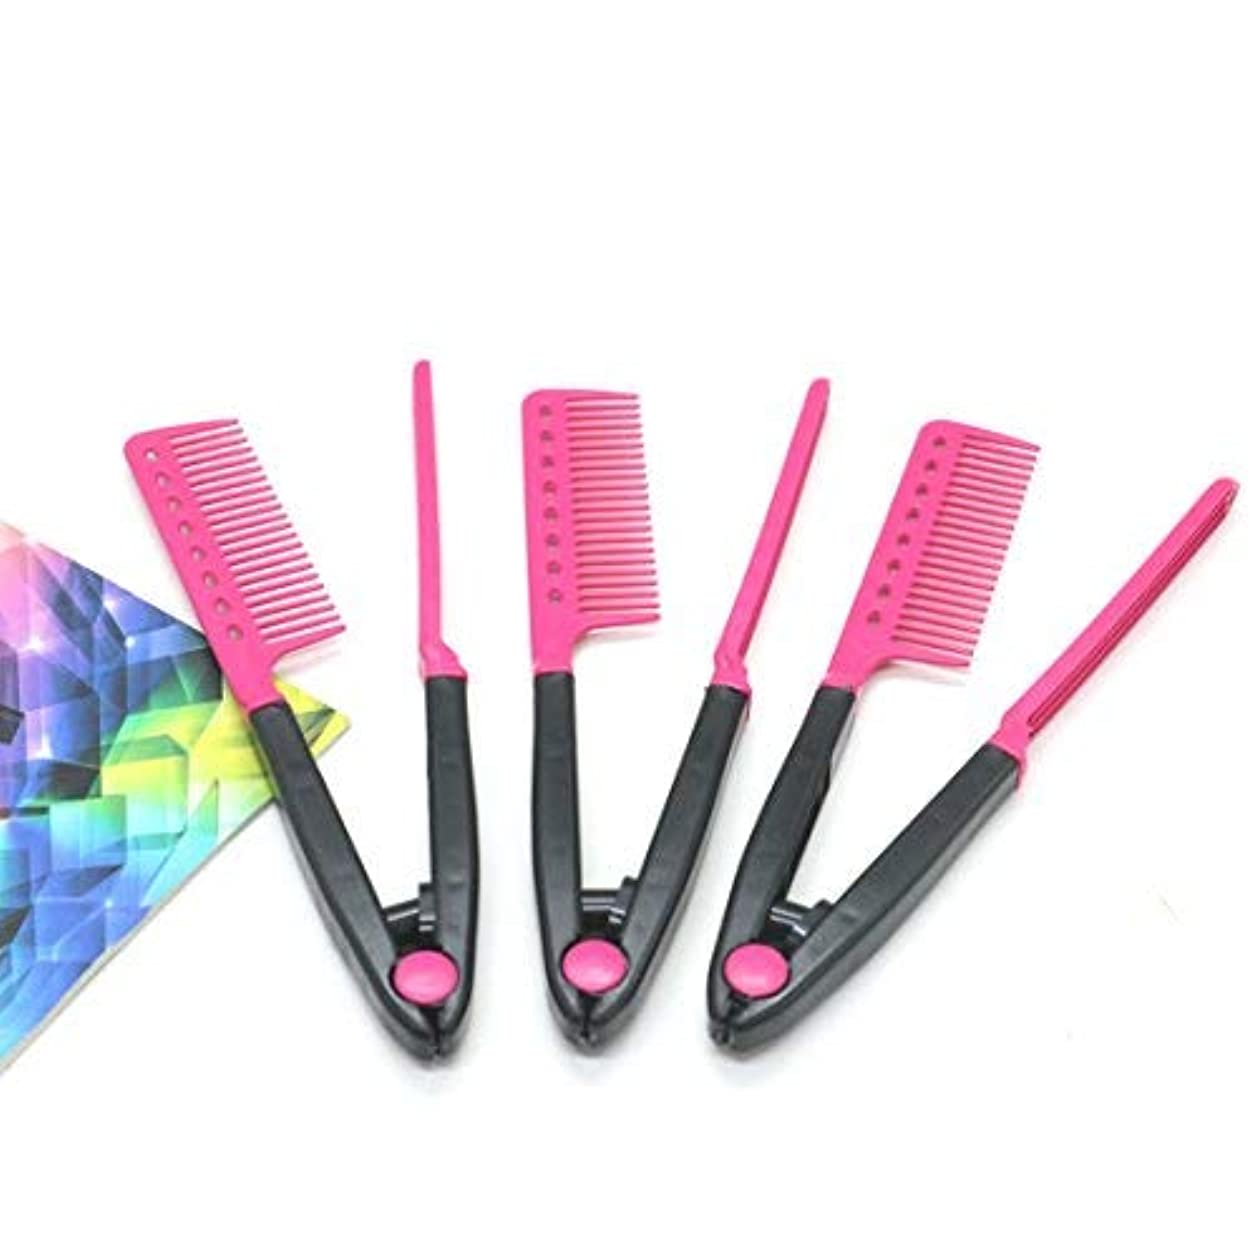 カンガルースピン薄汚いPack Of 3 DIY Hair Straightener V Shape Comb By IDS [並行輸入品]